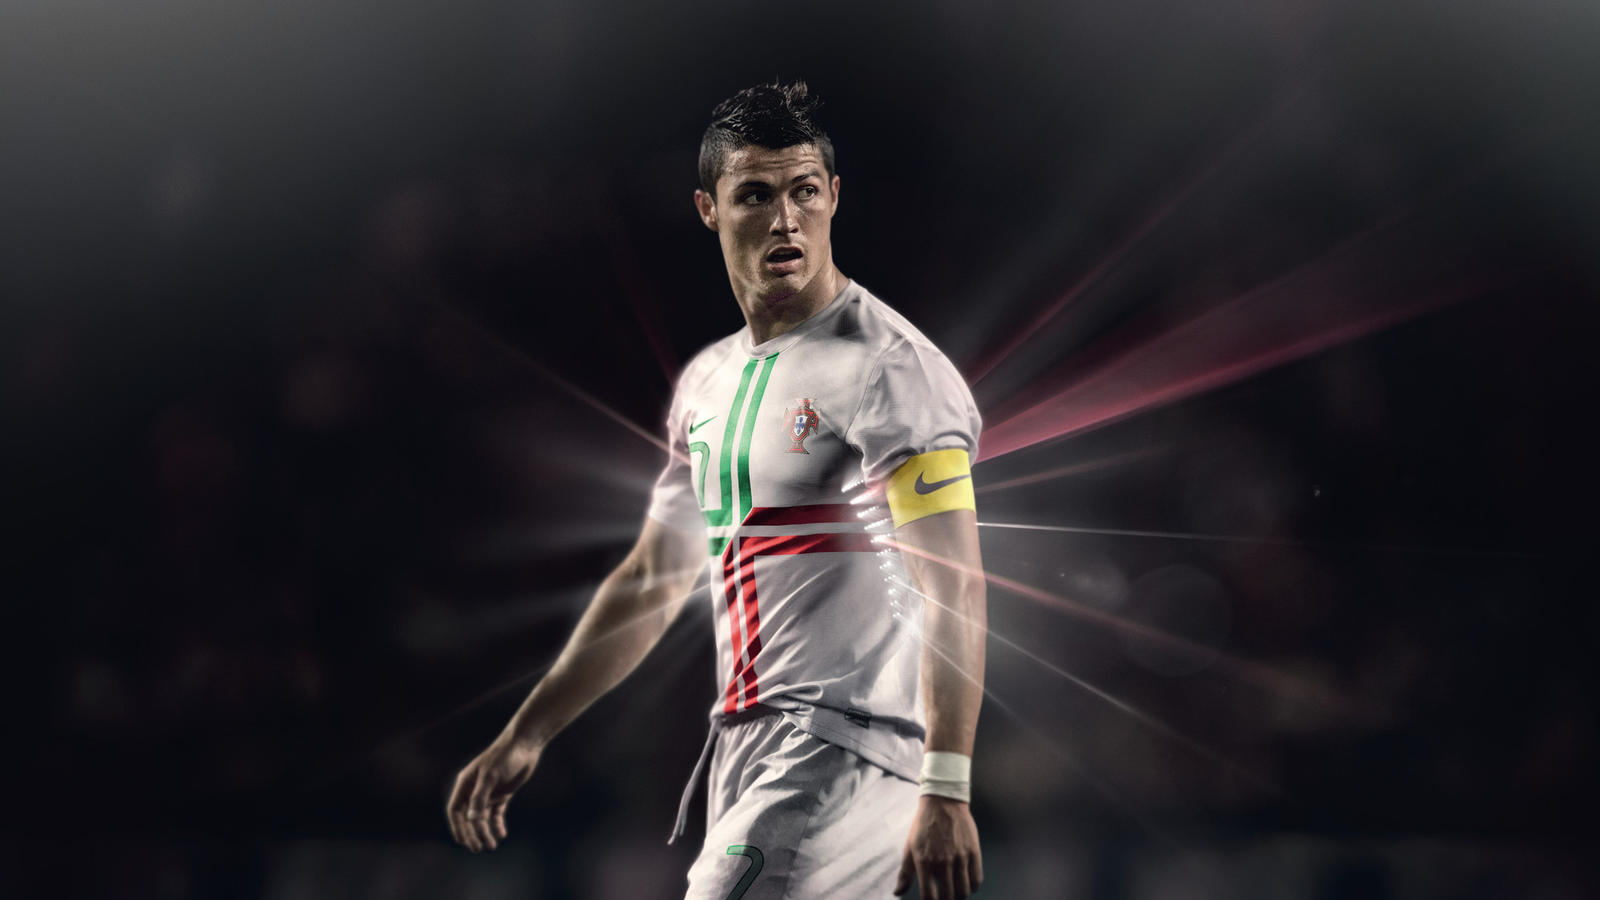 newest 86233 d8d4b Nike Football unveils Portugal Away National Team Kit - Nike ...